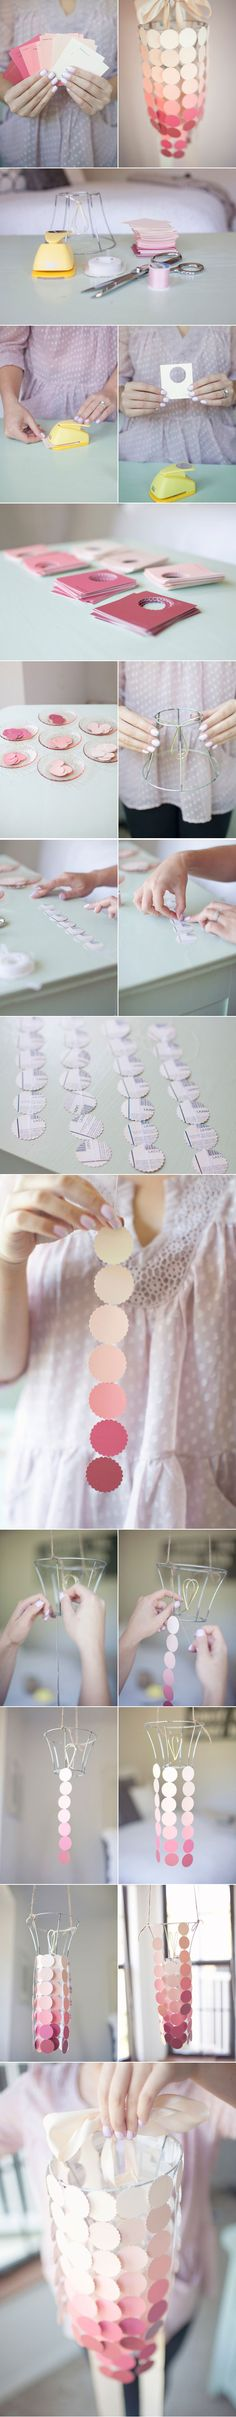 DIY Paint Swatch Chandelier diy crafts craft ideas easy crafts diy ideas diy idea diy home easy diy diy candles for the home crafty decor home ideas diy decorations